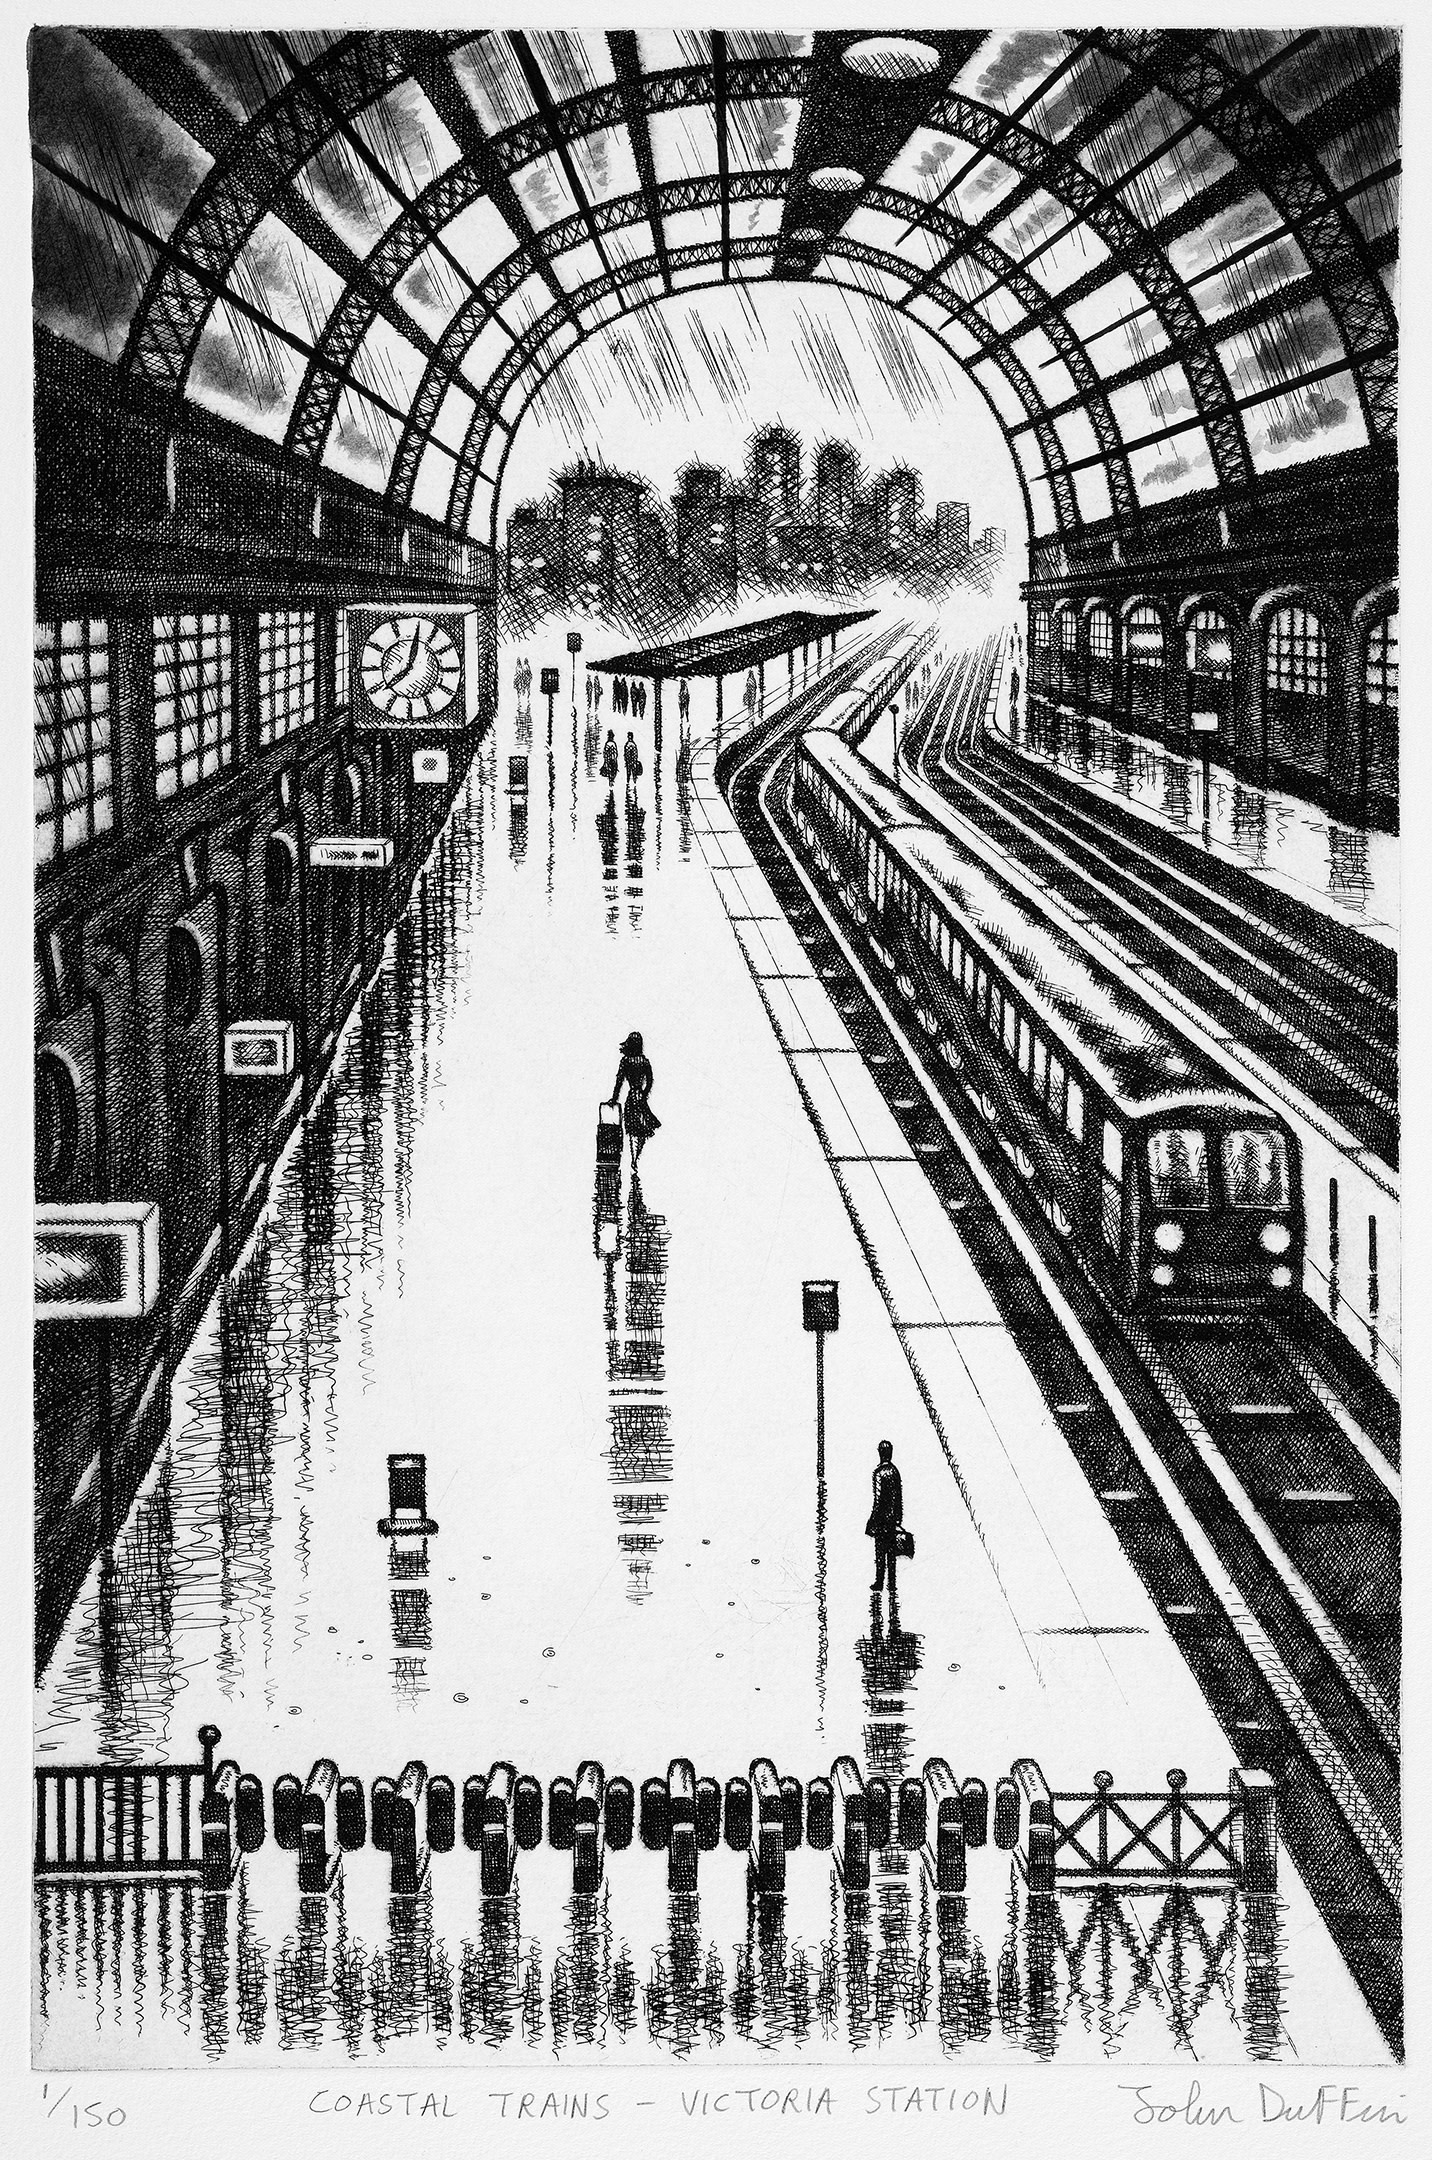 "<span class=""link fancybox-details-link""><a href=""/exhibitions/17/works/image_standalone672/"">View Detail Page</a></span><p><strong>John Duffin</strong></p><p>Coastal Trains - Victoria Station</p><p>etching, ed of 150</p><p>60 x 40cm</p><p>£295 framed</p><p>£195 unframed</p><p> </p>"